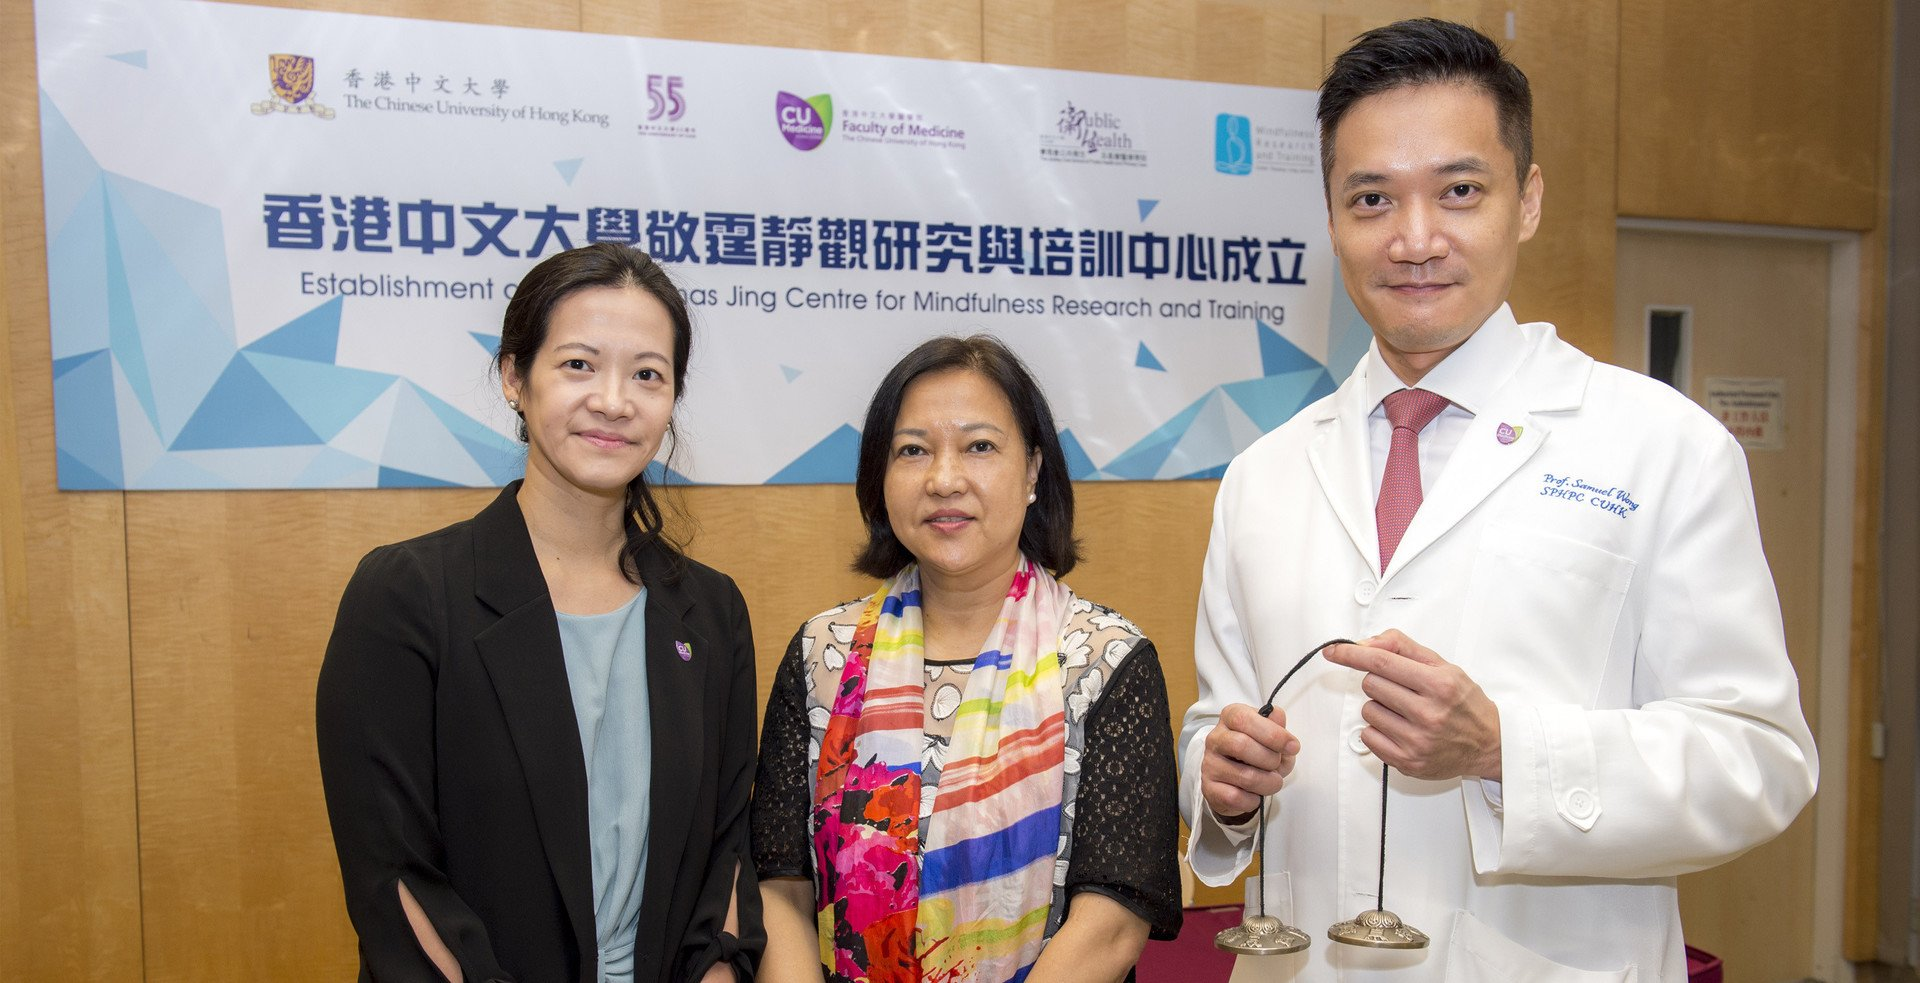 CUHK Thomas Jing Centre for Mindfulness Research and Training Established